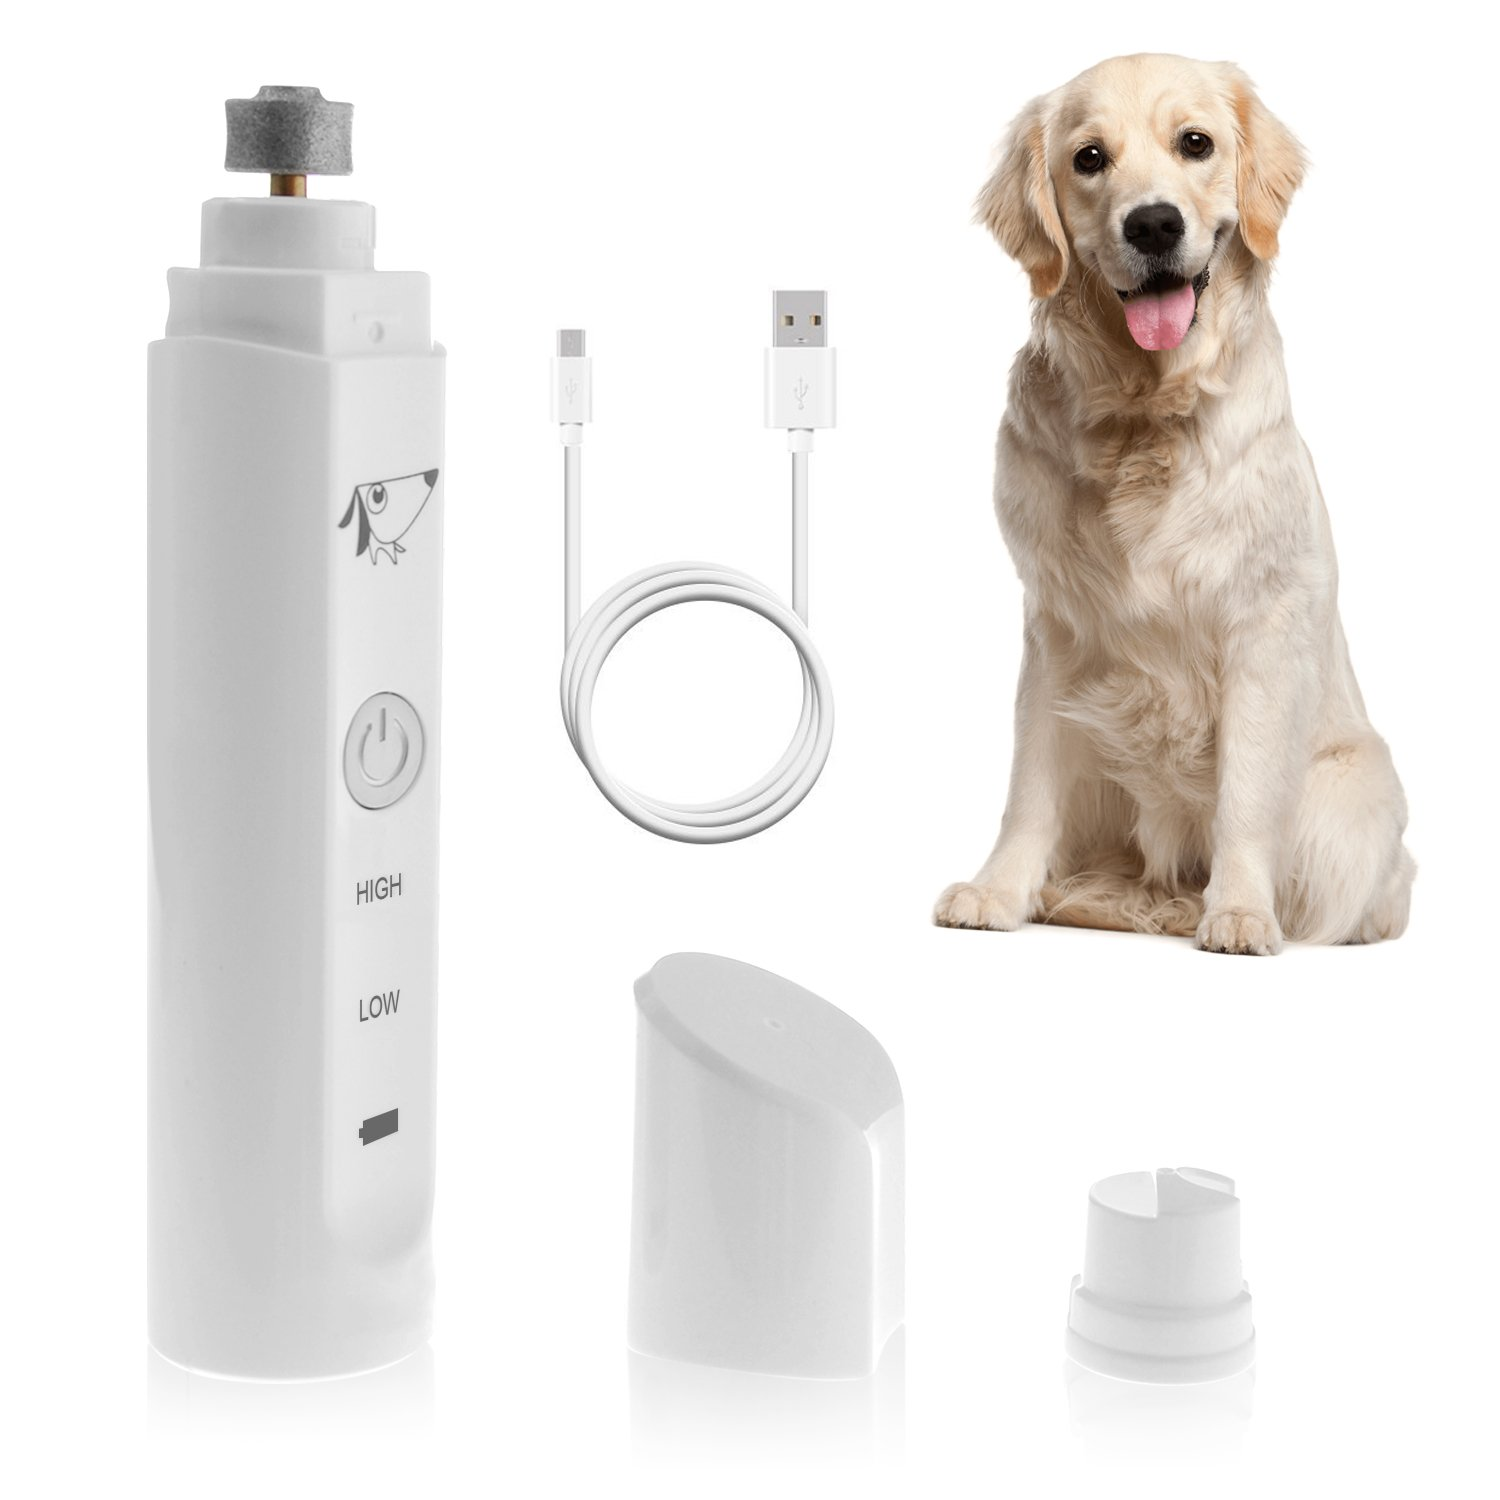 Rechargeable Electric Pet Nail Grinder Dogs Cats Other Small Medium Large Pets USB Charging